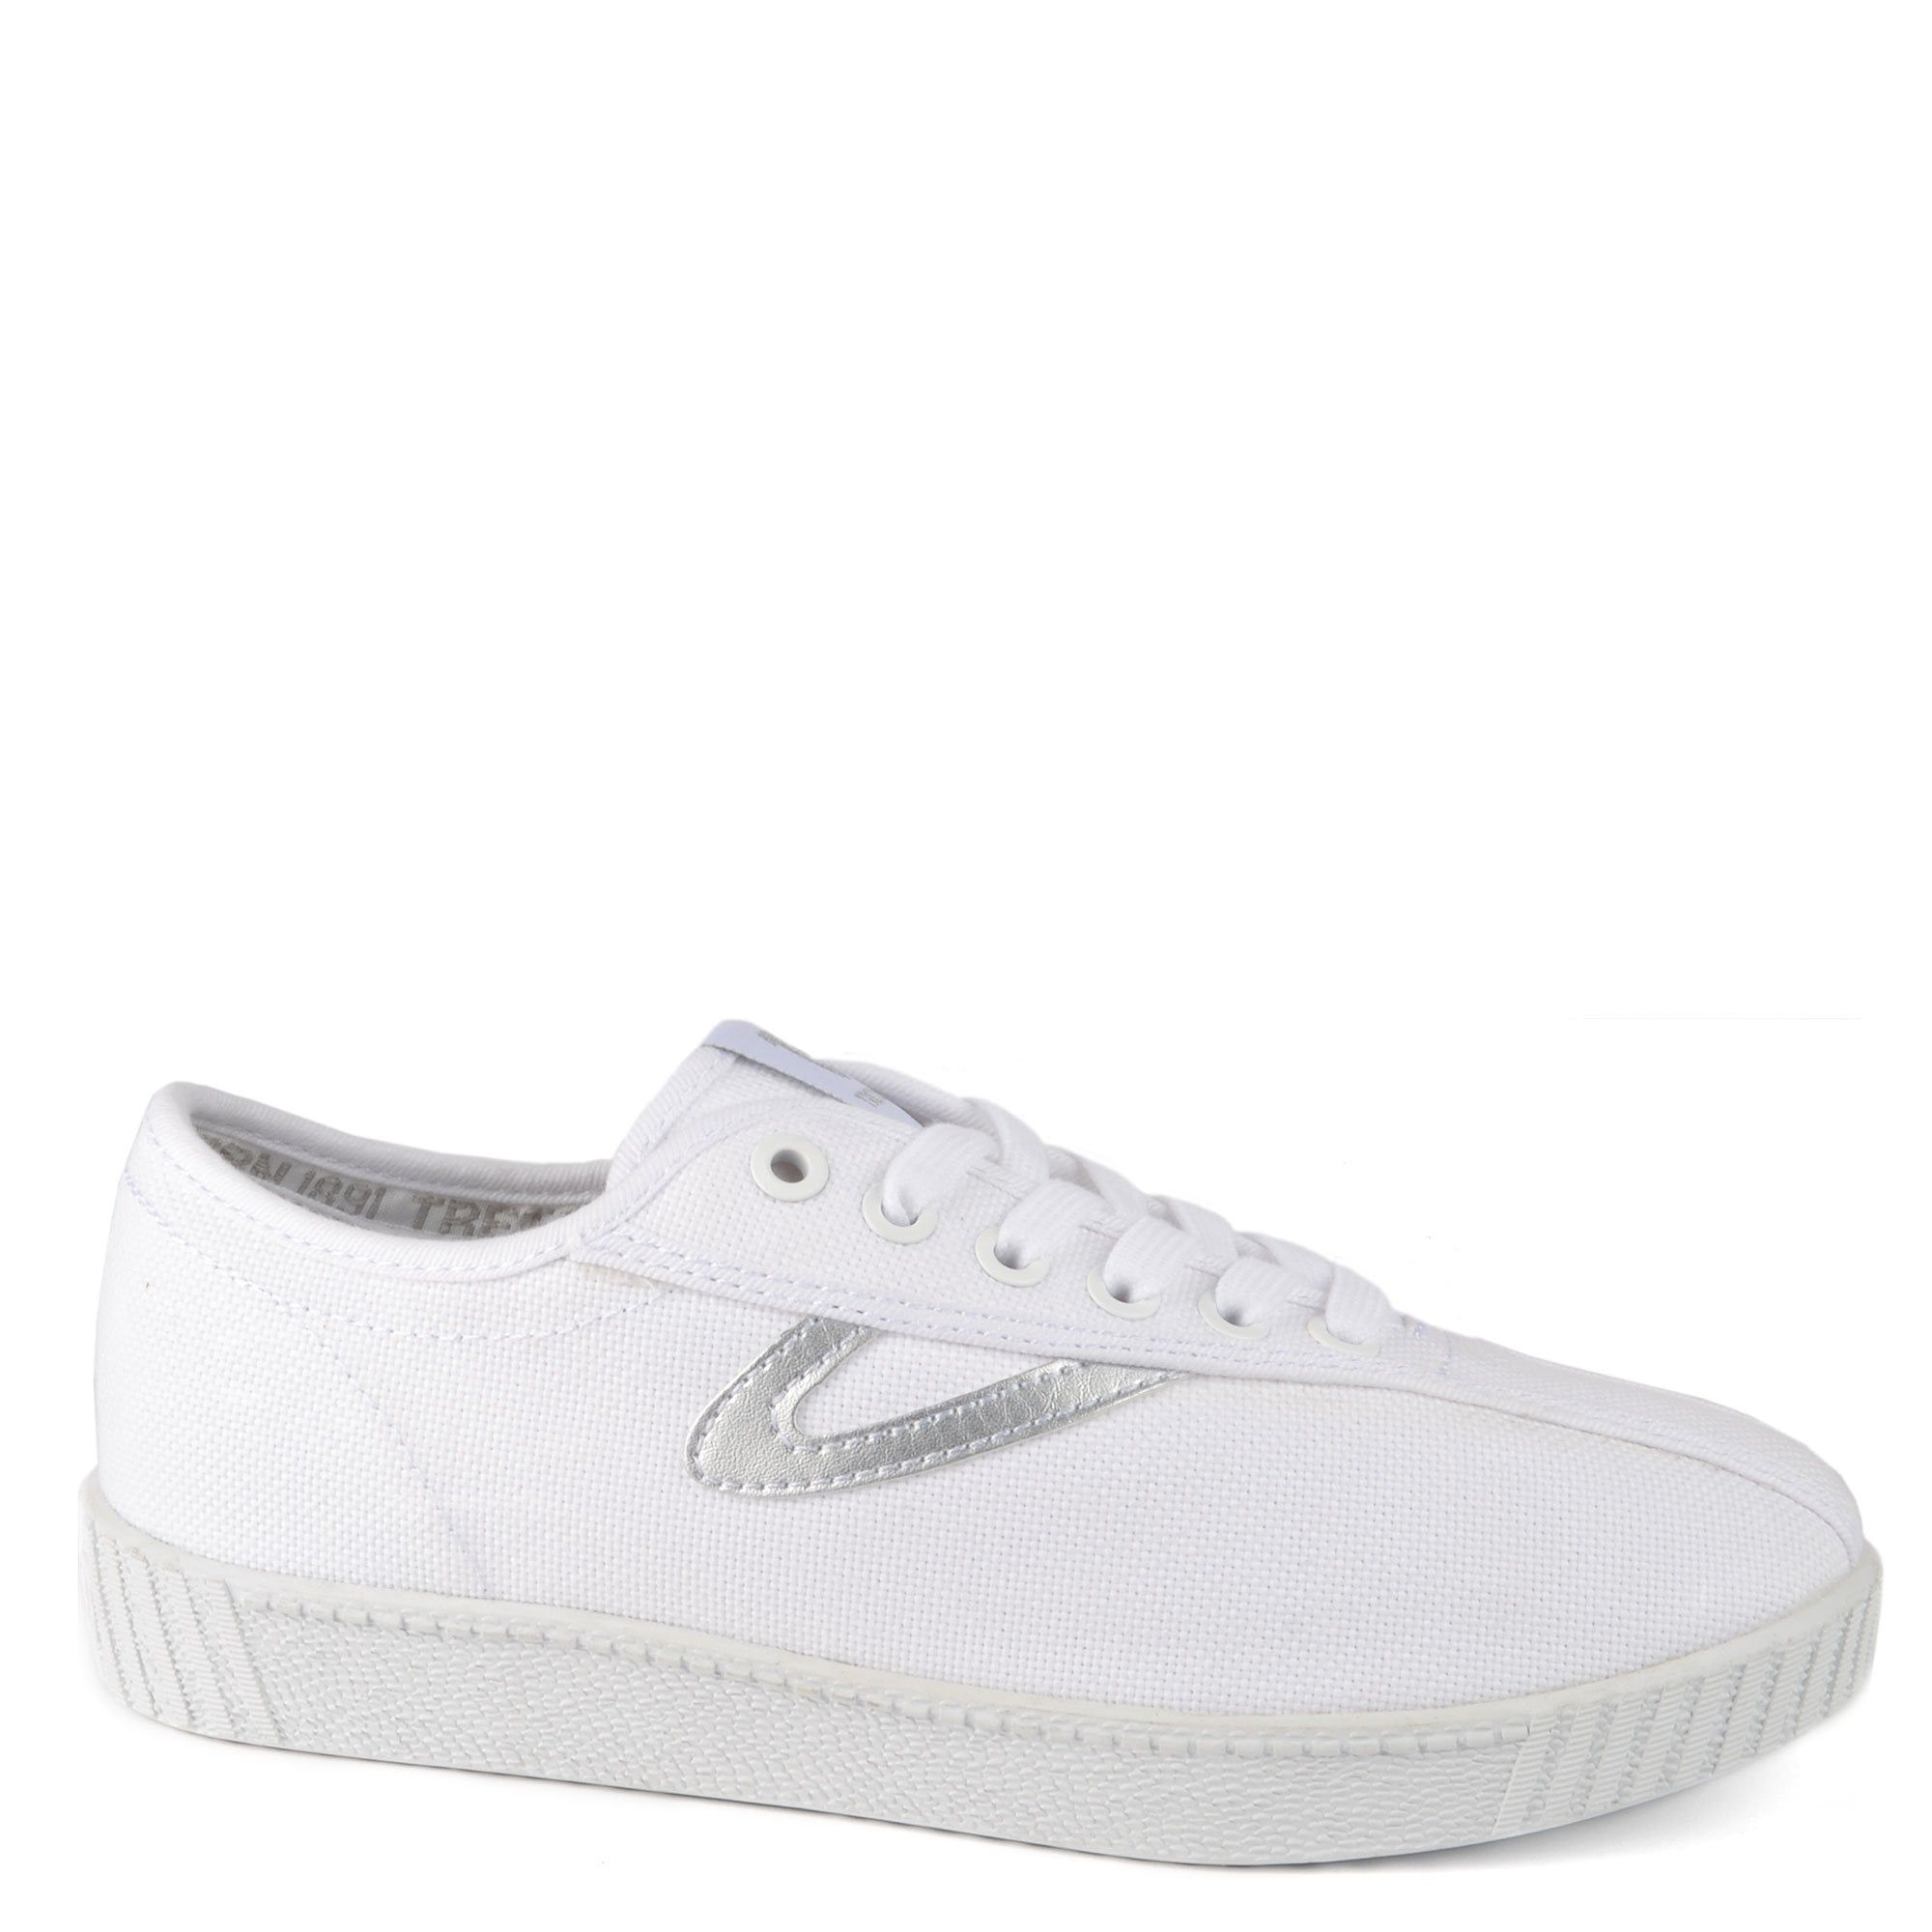 Tretorn Nylite Canvas Trainers in White